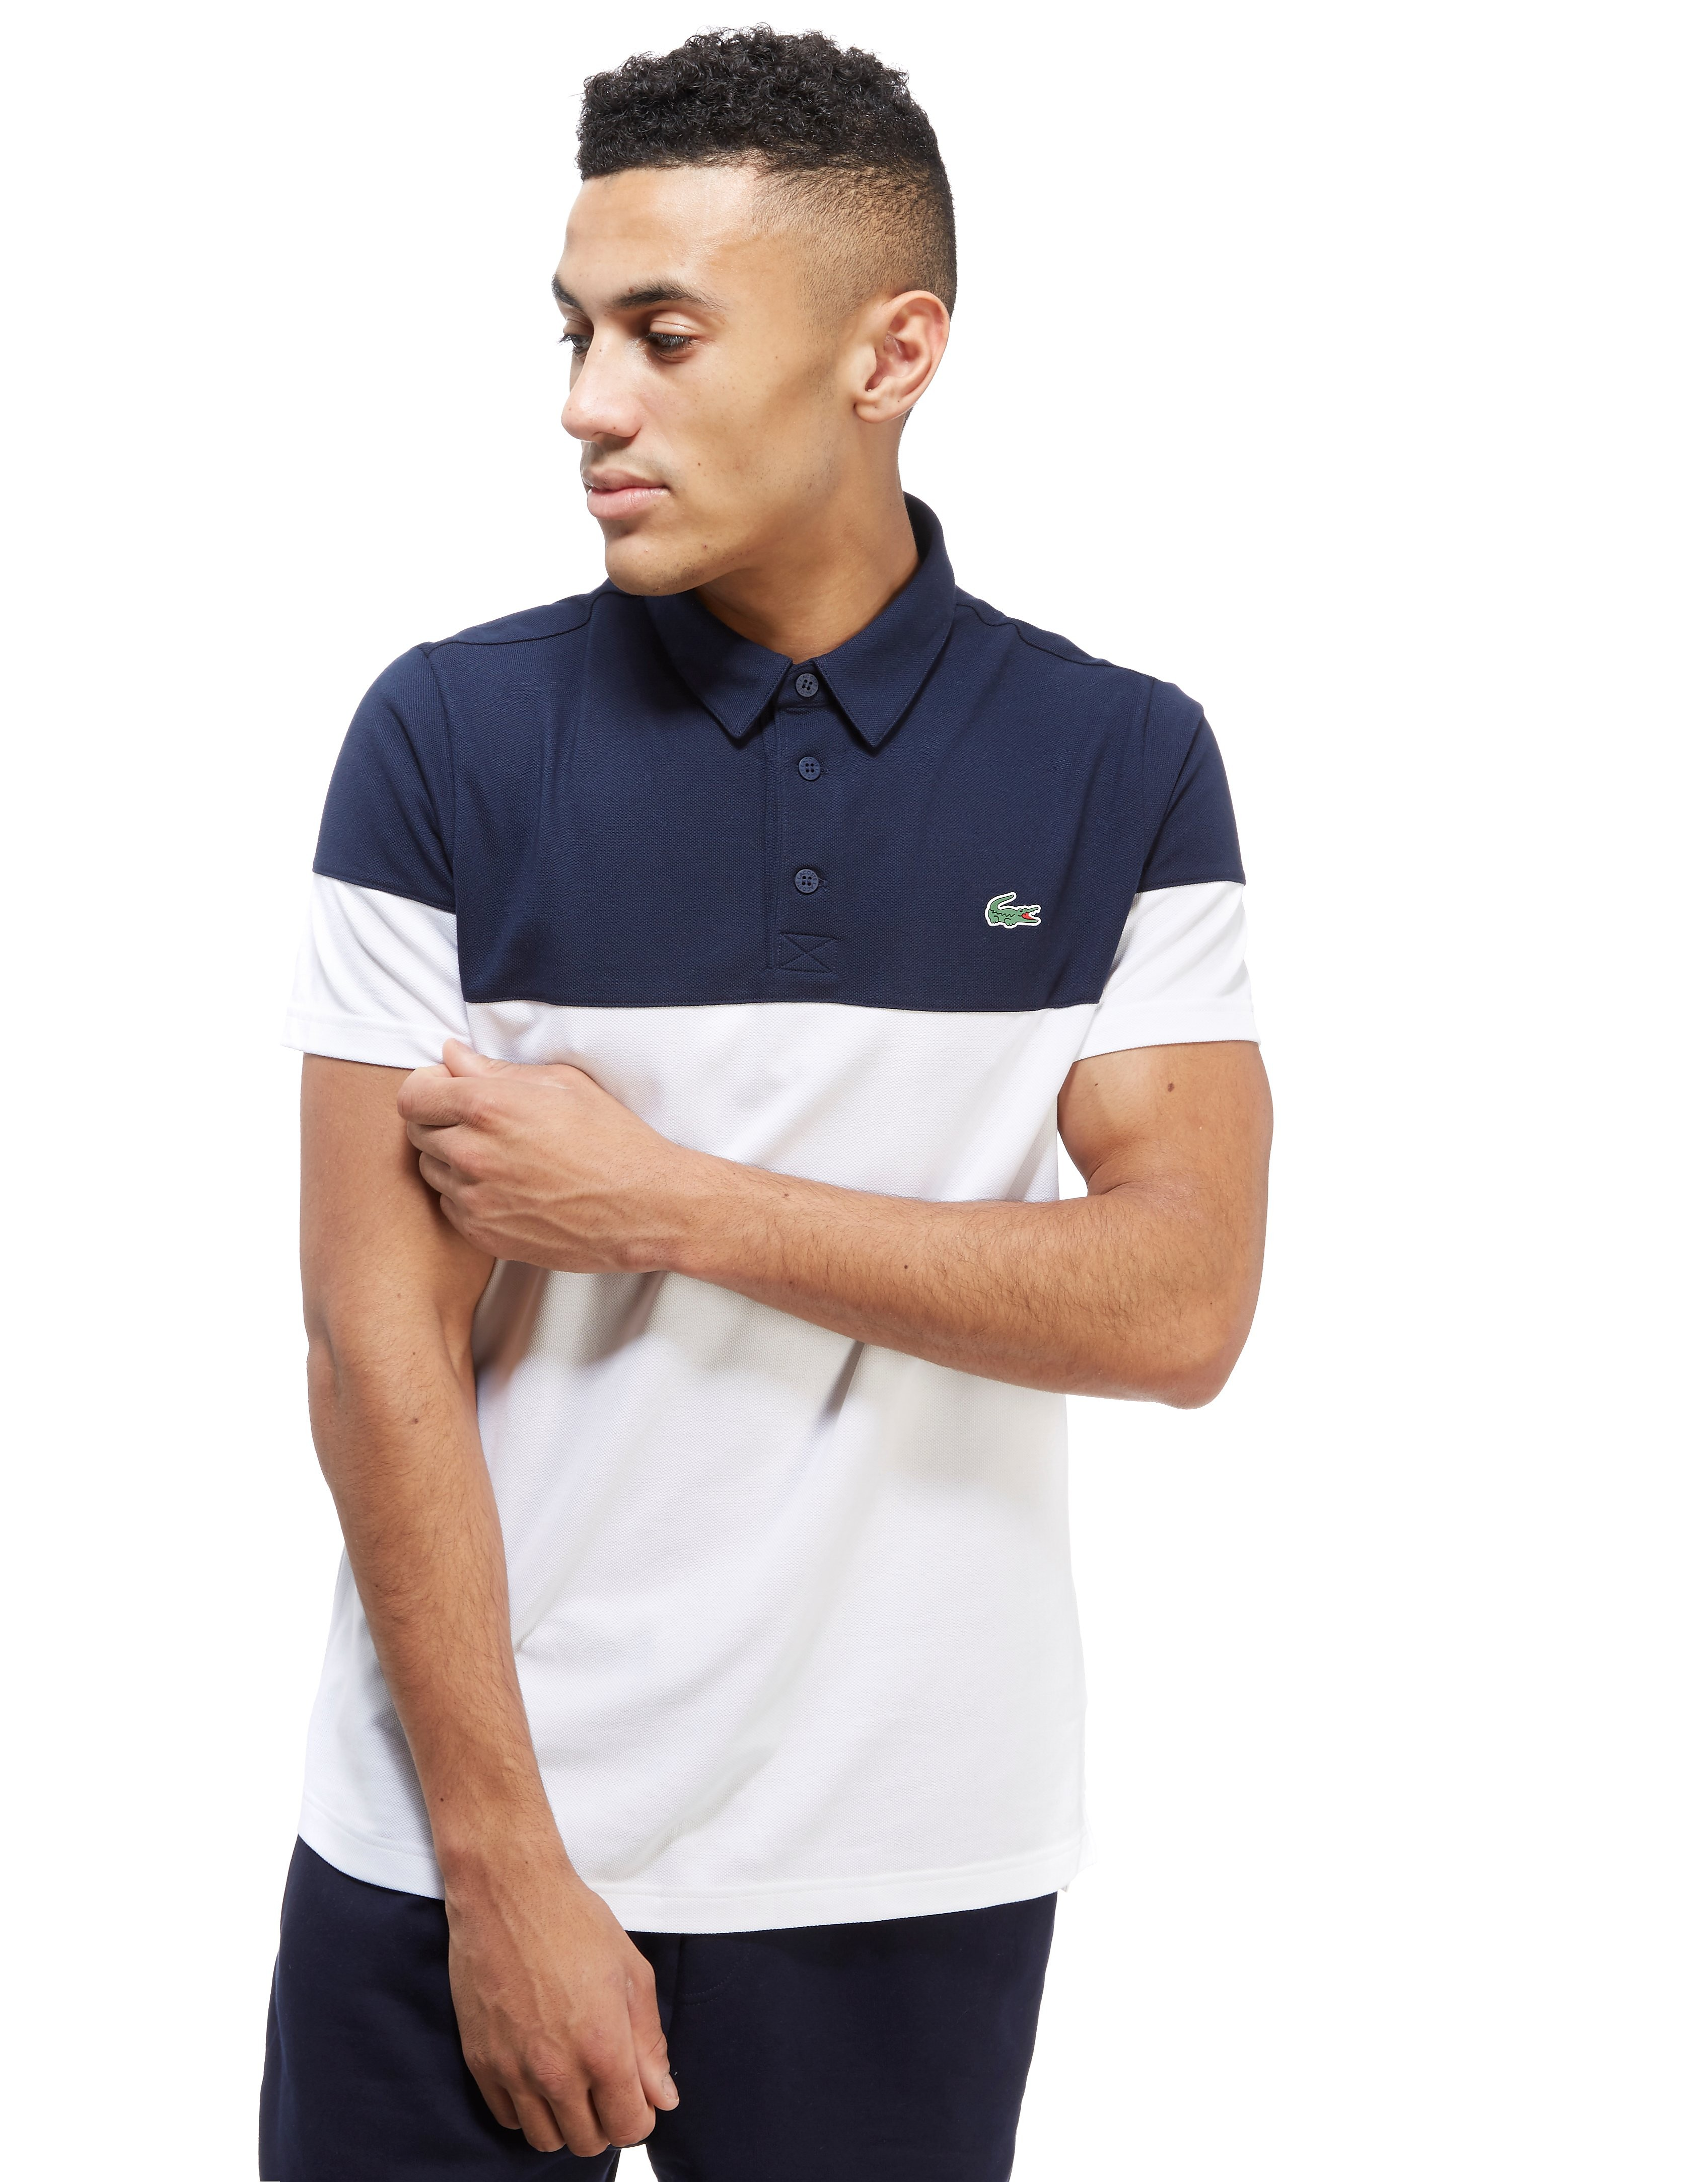 Lacoste Colourblock Polo Shirt